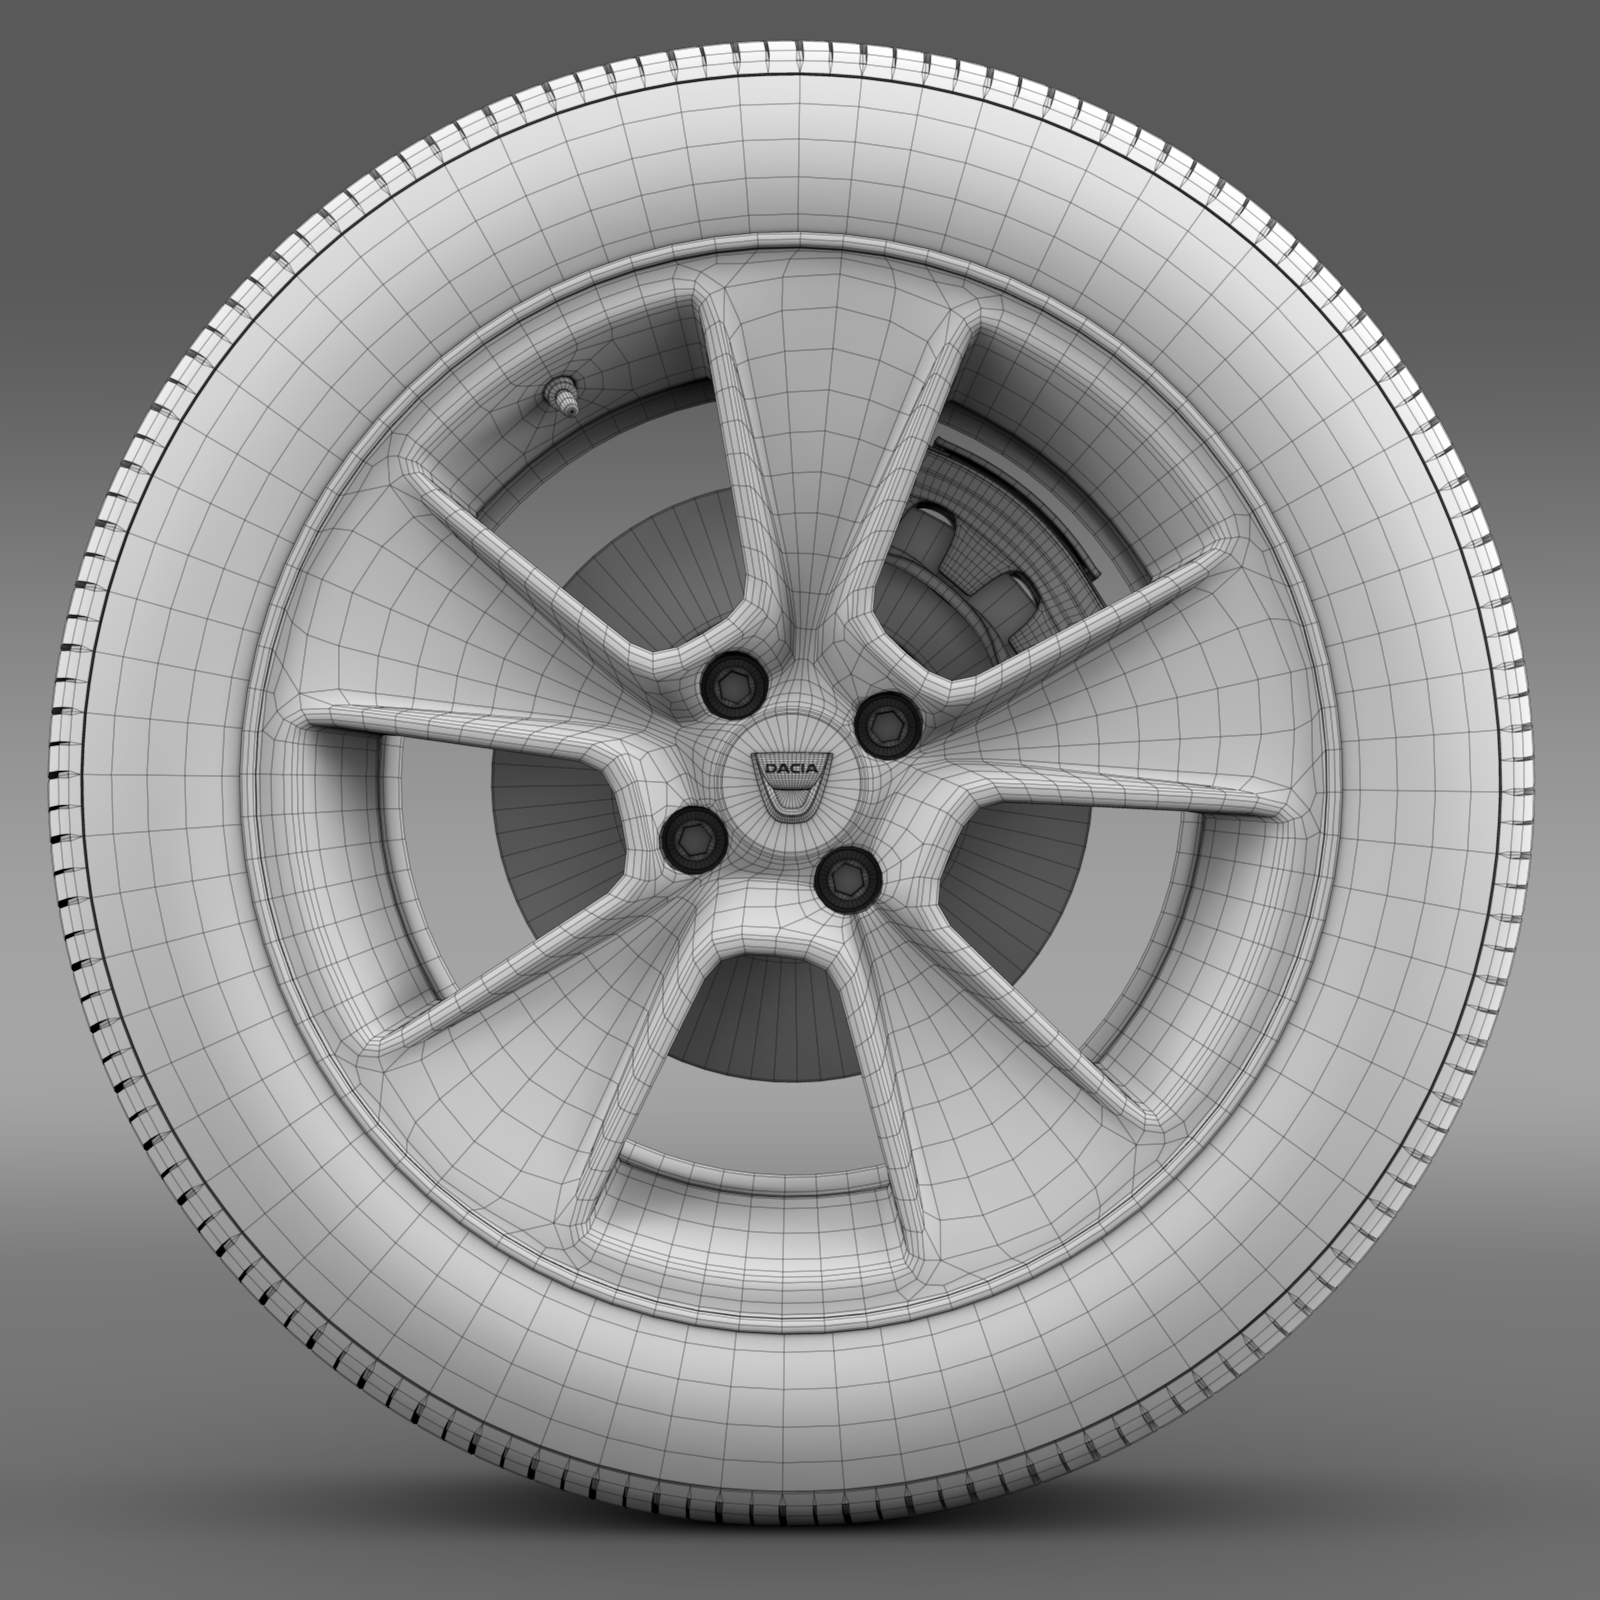 dacia logan wheel 3d model 3ds max fbx c4d lwo ma mb hrc xsi obj 212801